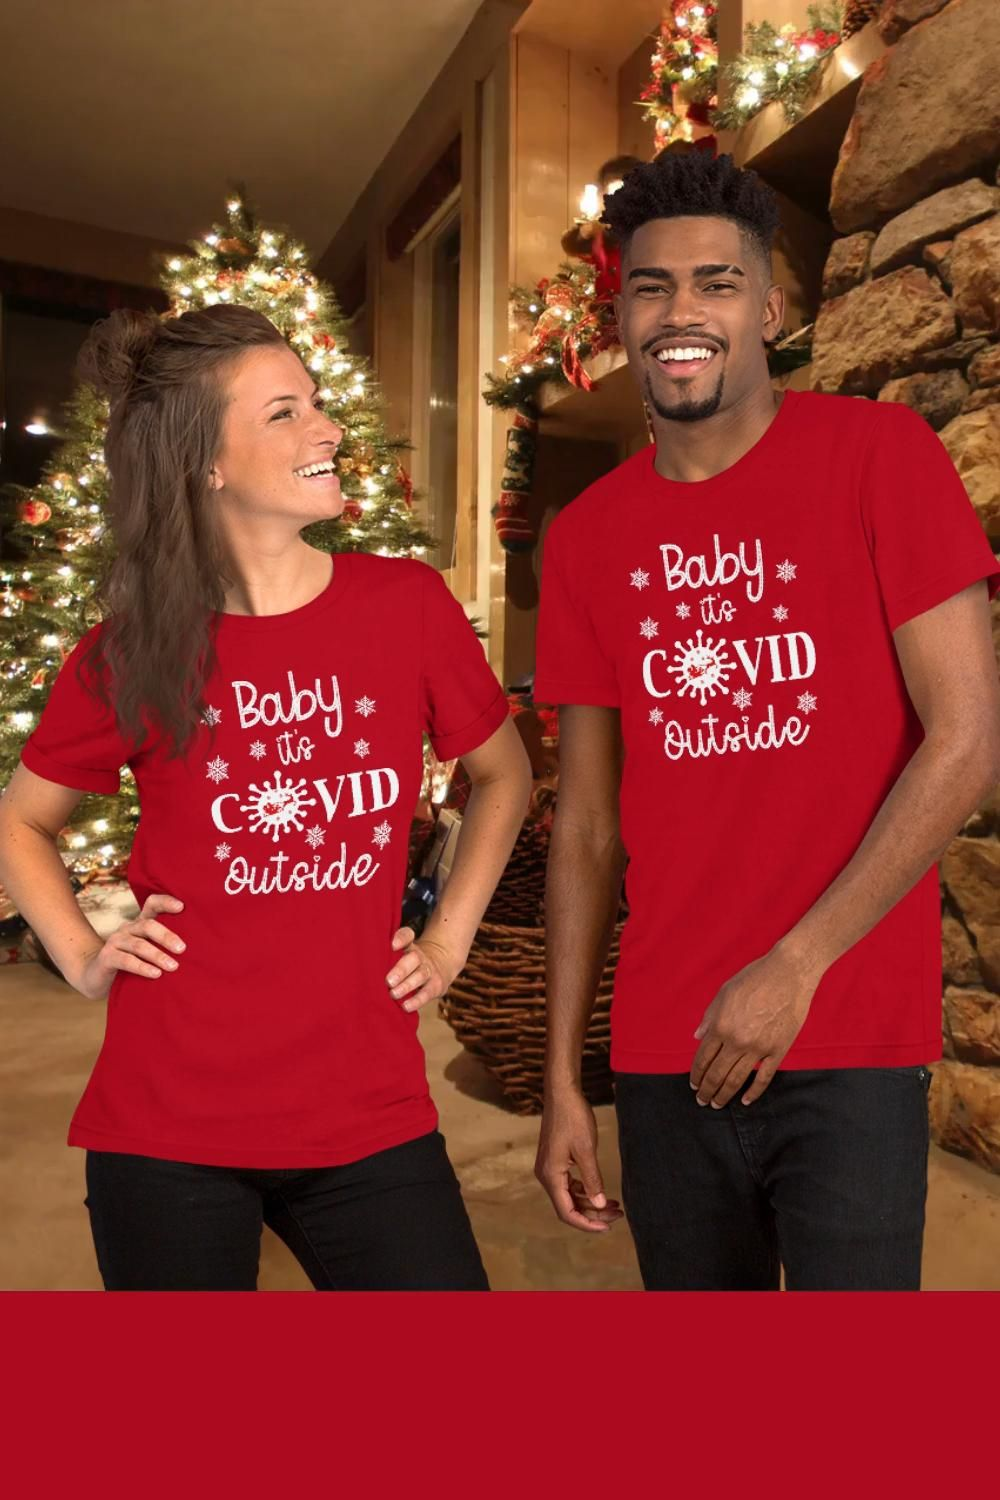 Baby, It's Covid Outside Christmas 2020 T-shirt